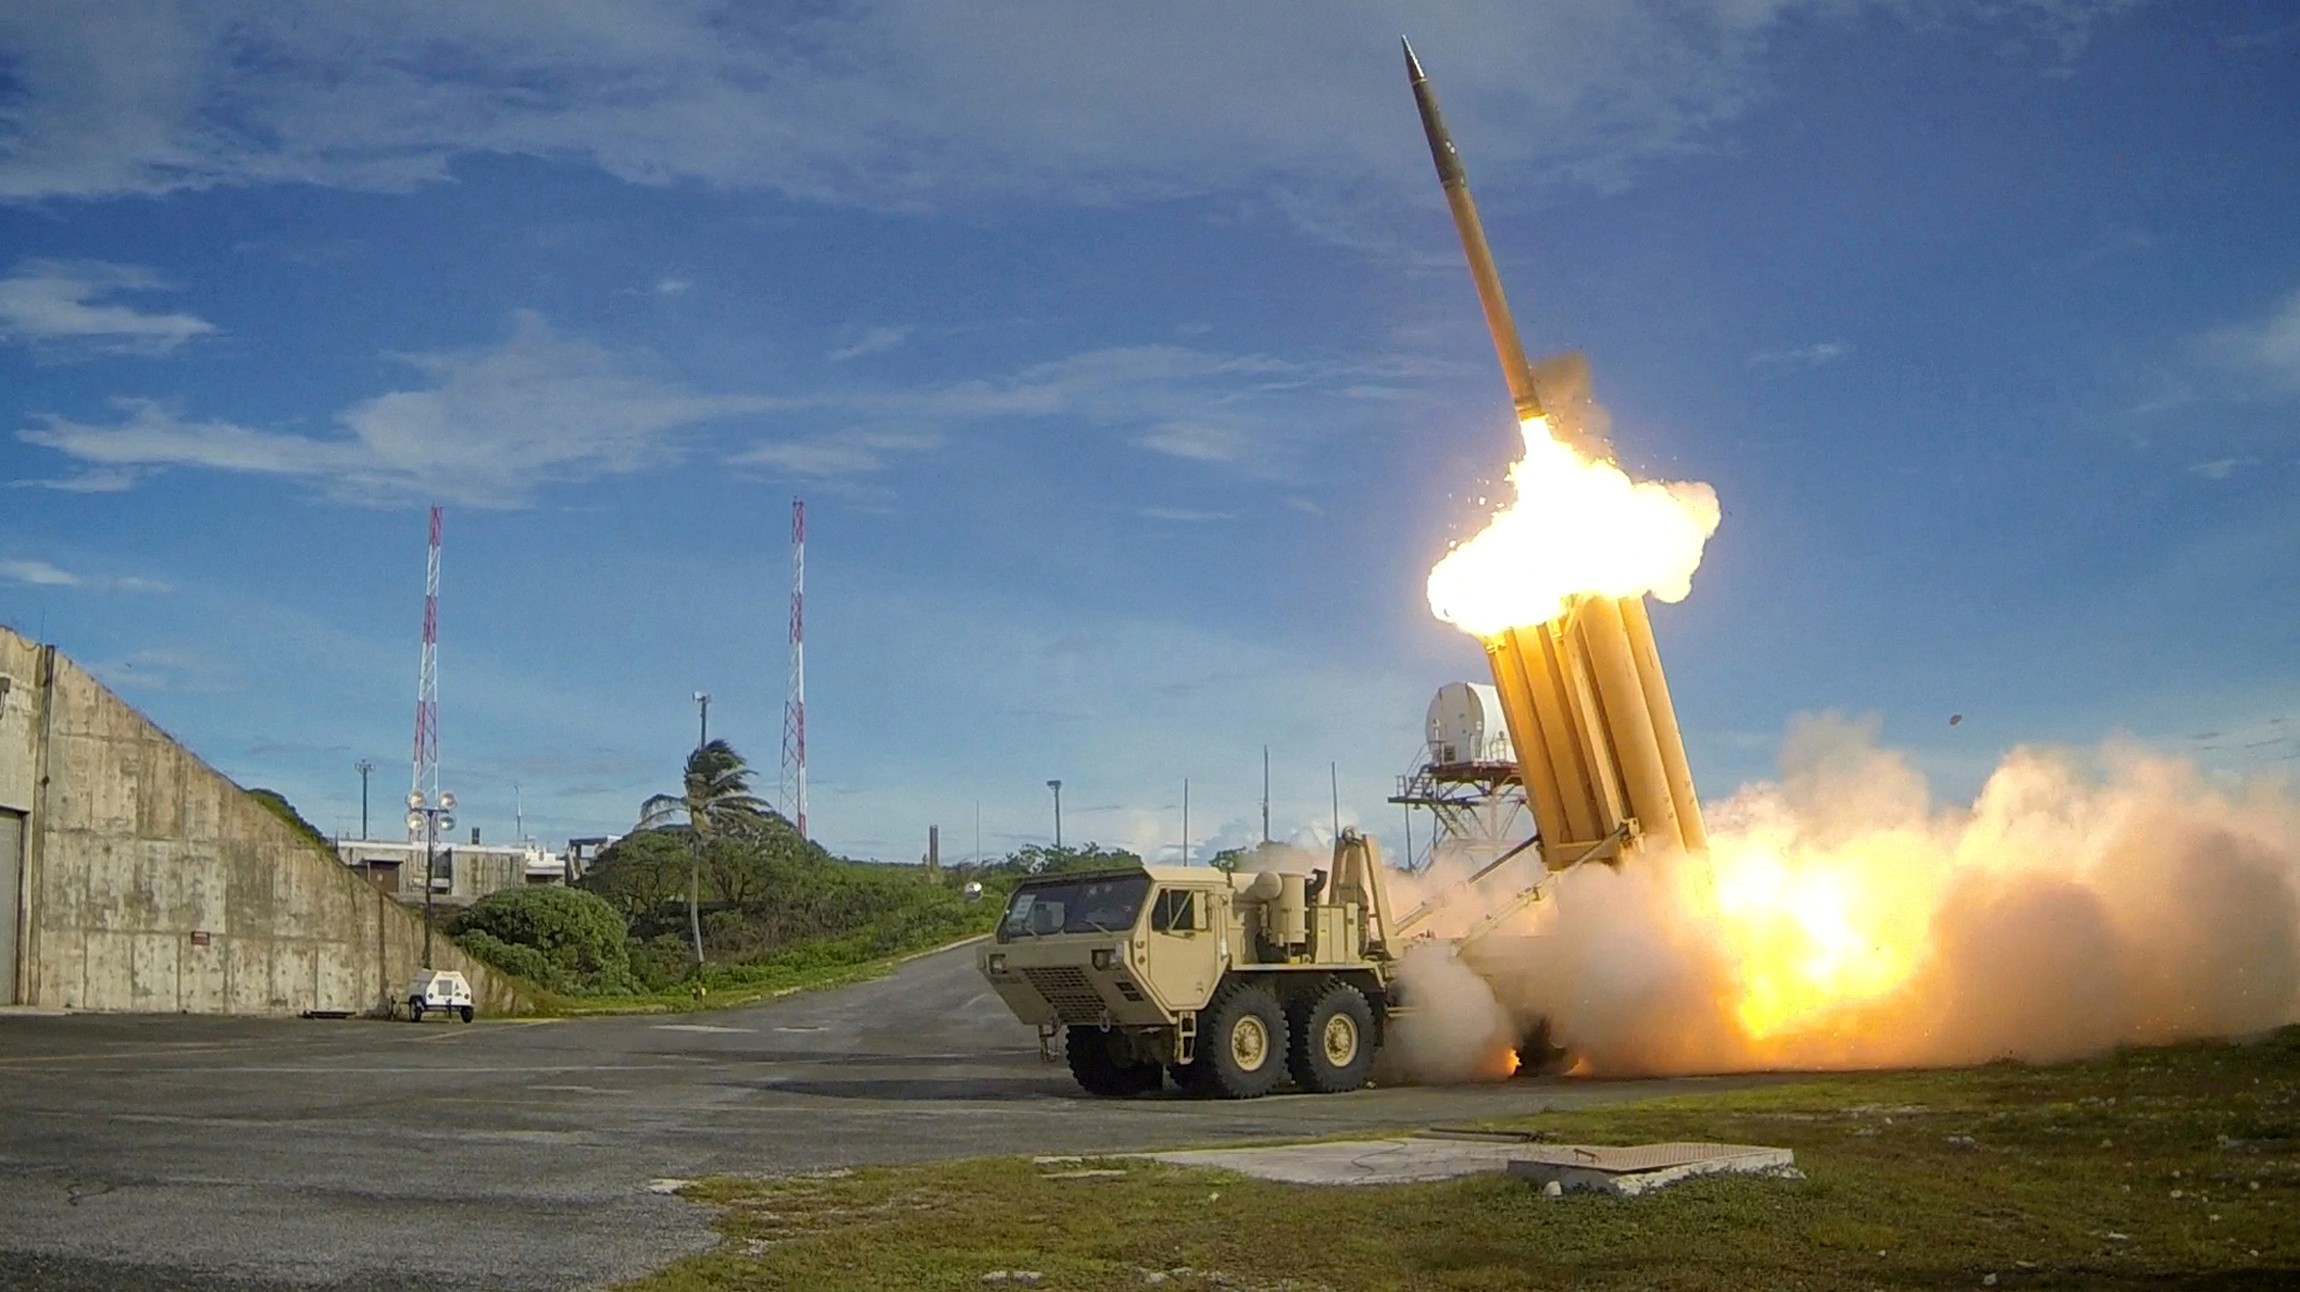 It looks cool, but does it work? A Terminal High Altitude Area Defense (THAAD) interceptor is launched during a test, in this undated photo provided by the Pentagon's Missile Defense Agency.